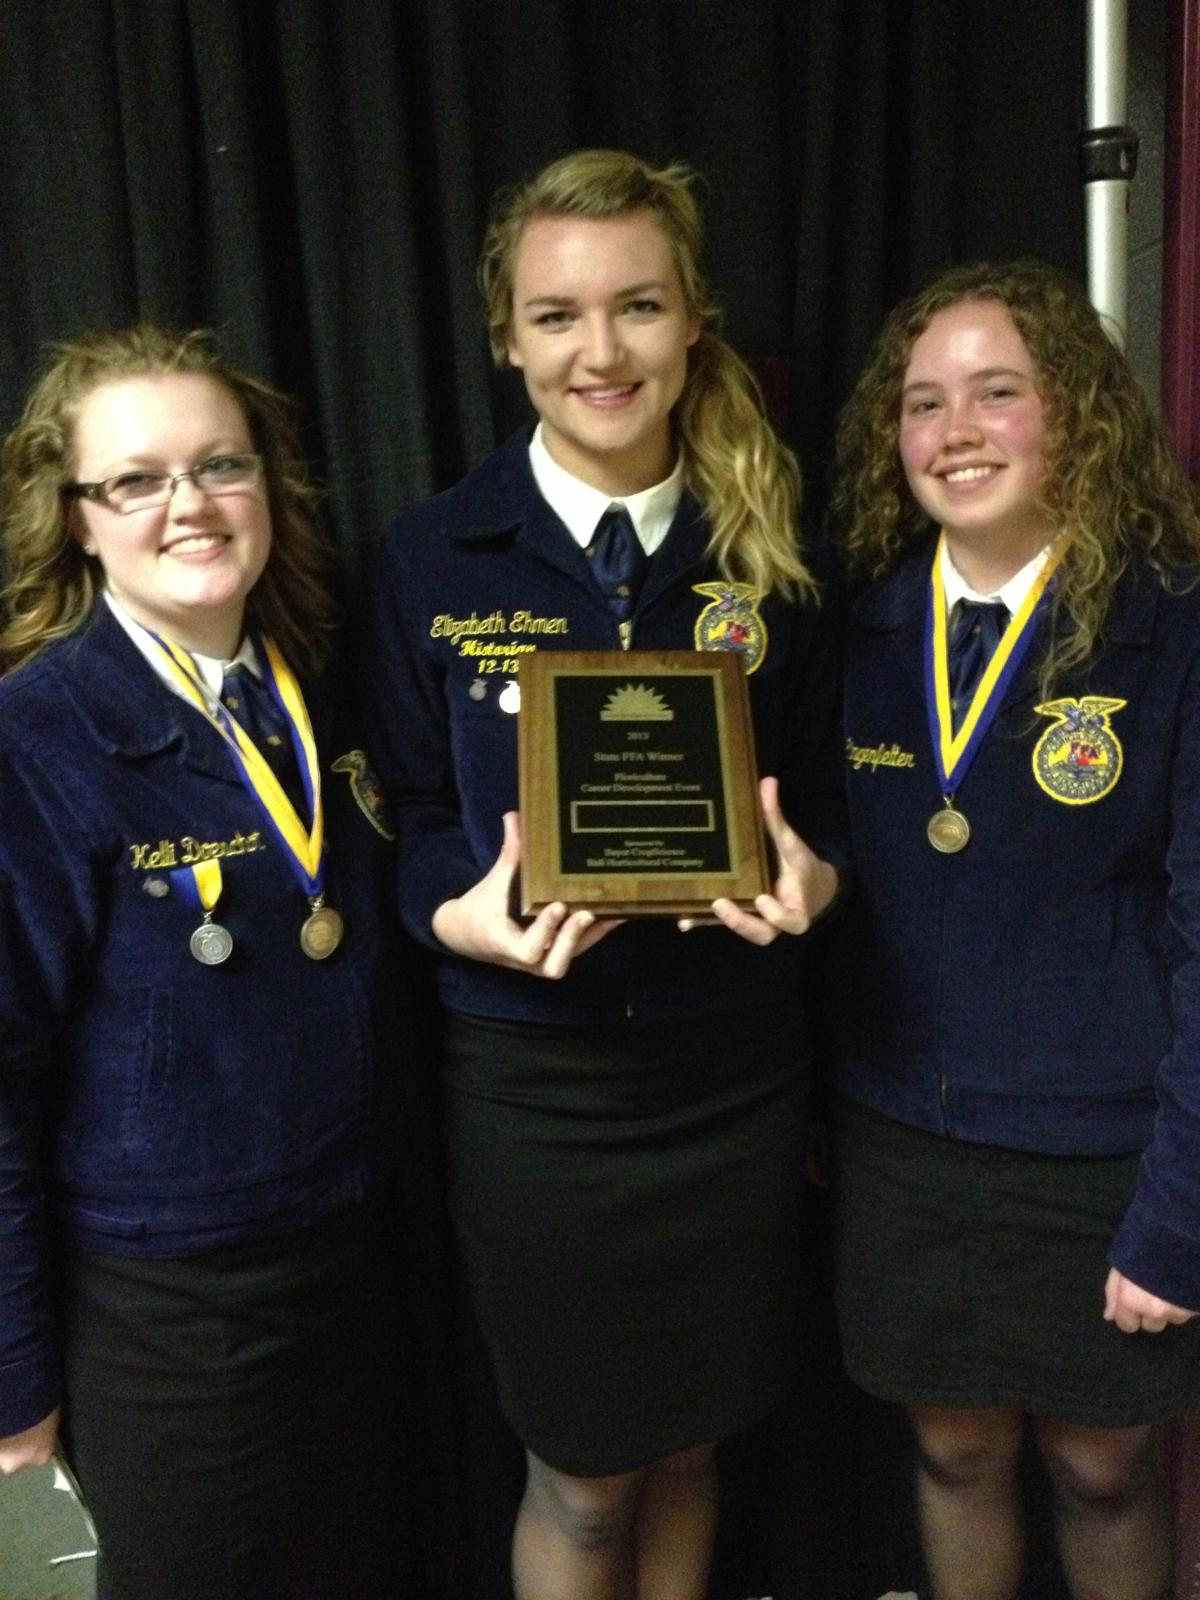 Norris School District: Norris FFA Competes In 2013 State FFA Convention